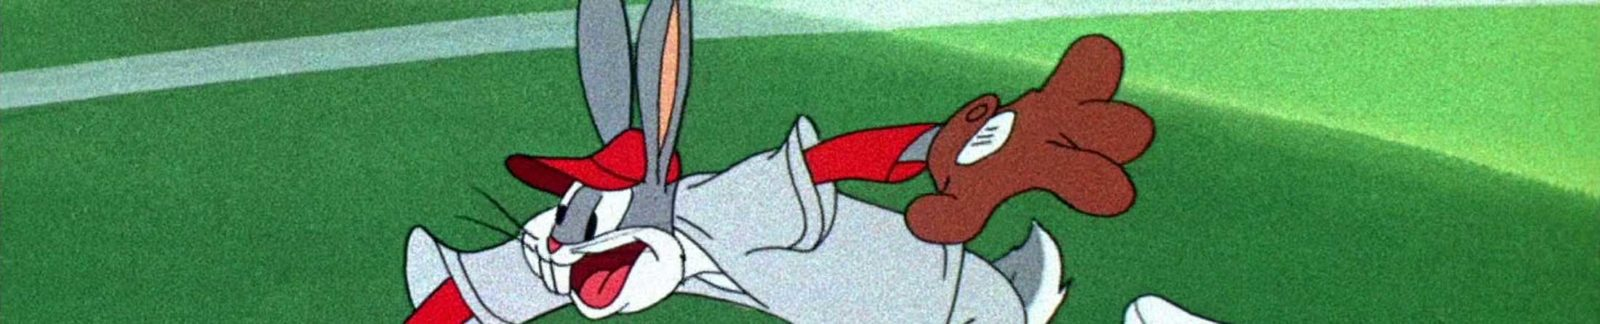 Baseball Bugs Bunny cartoon - header